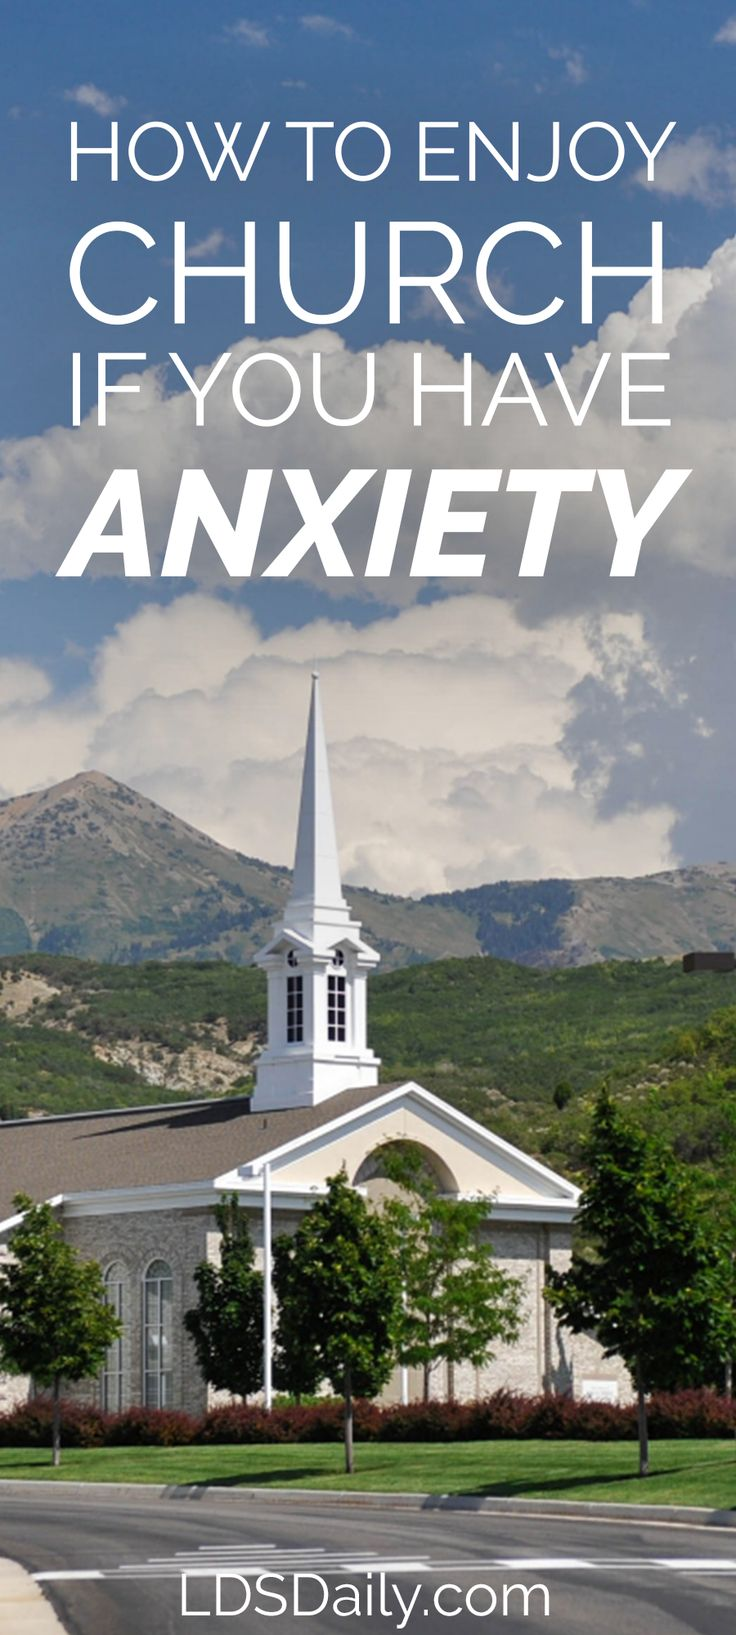 Earlier this year, we published an article entitled How to Enjoy the Temple If You Have Anxiety. Many of our readers who related to the article mentioned their anxiety can also be triggered by the hustle and bustle of Sunday meetings. While anxiety and other mental illnesses can interfere with all aspects of daily life, …